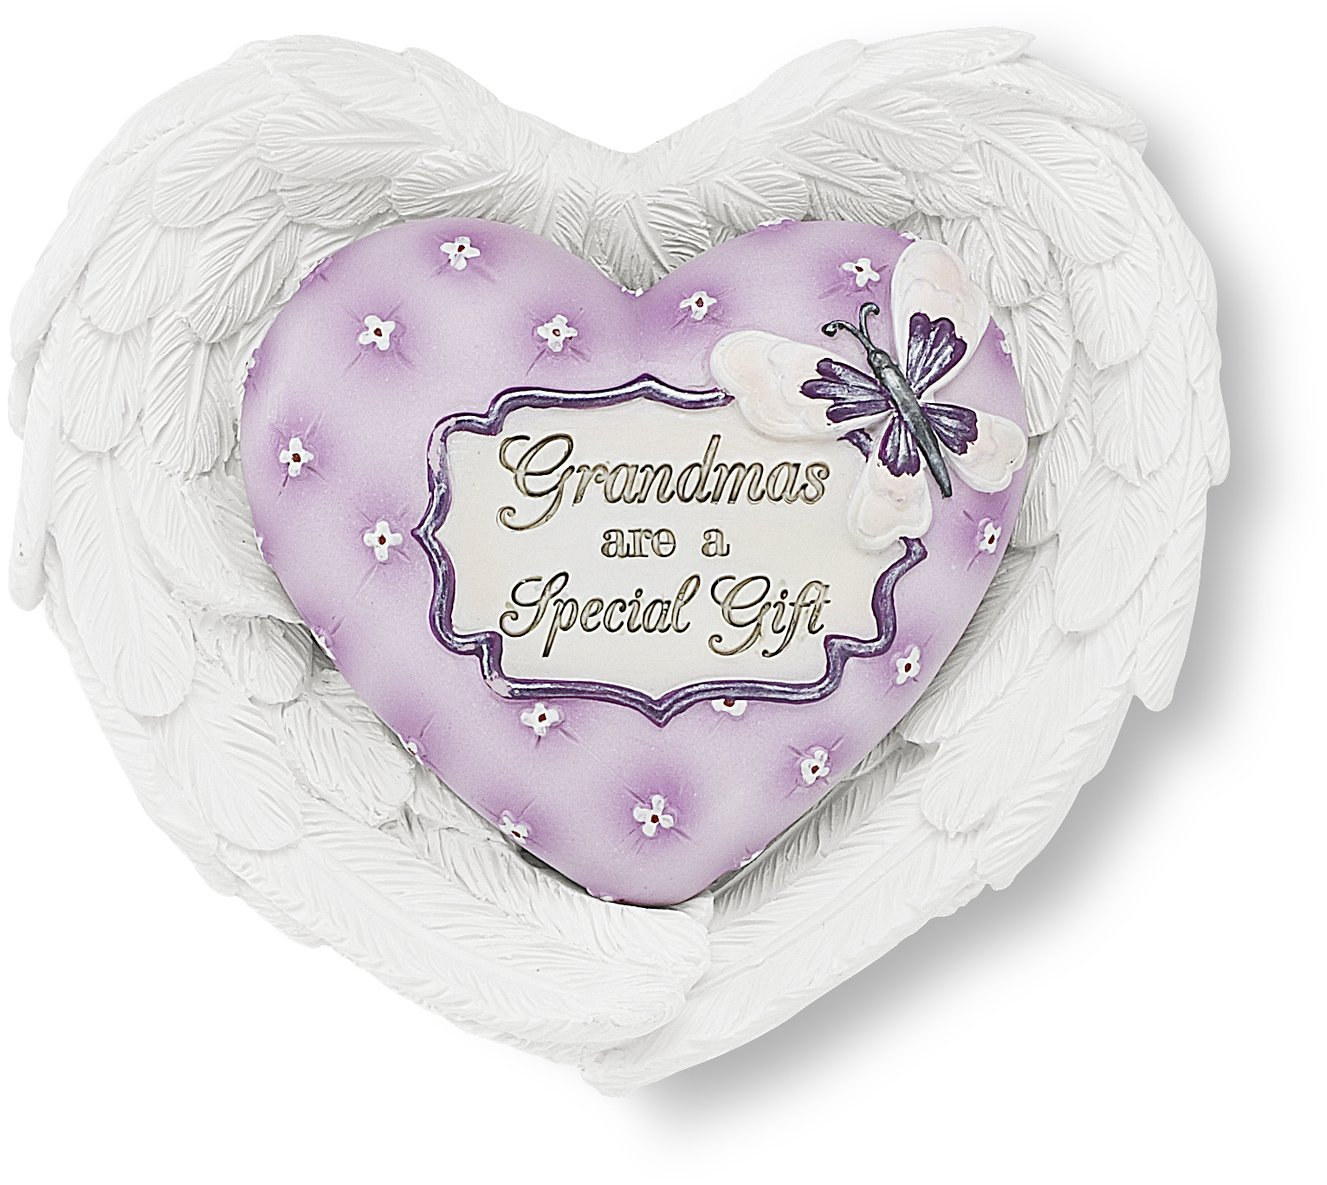 Heart Expressions by Pavilion Heart and Wing Gift Set, Grandma Sentiment, 3-1/2 by 3-Inch